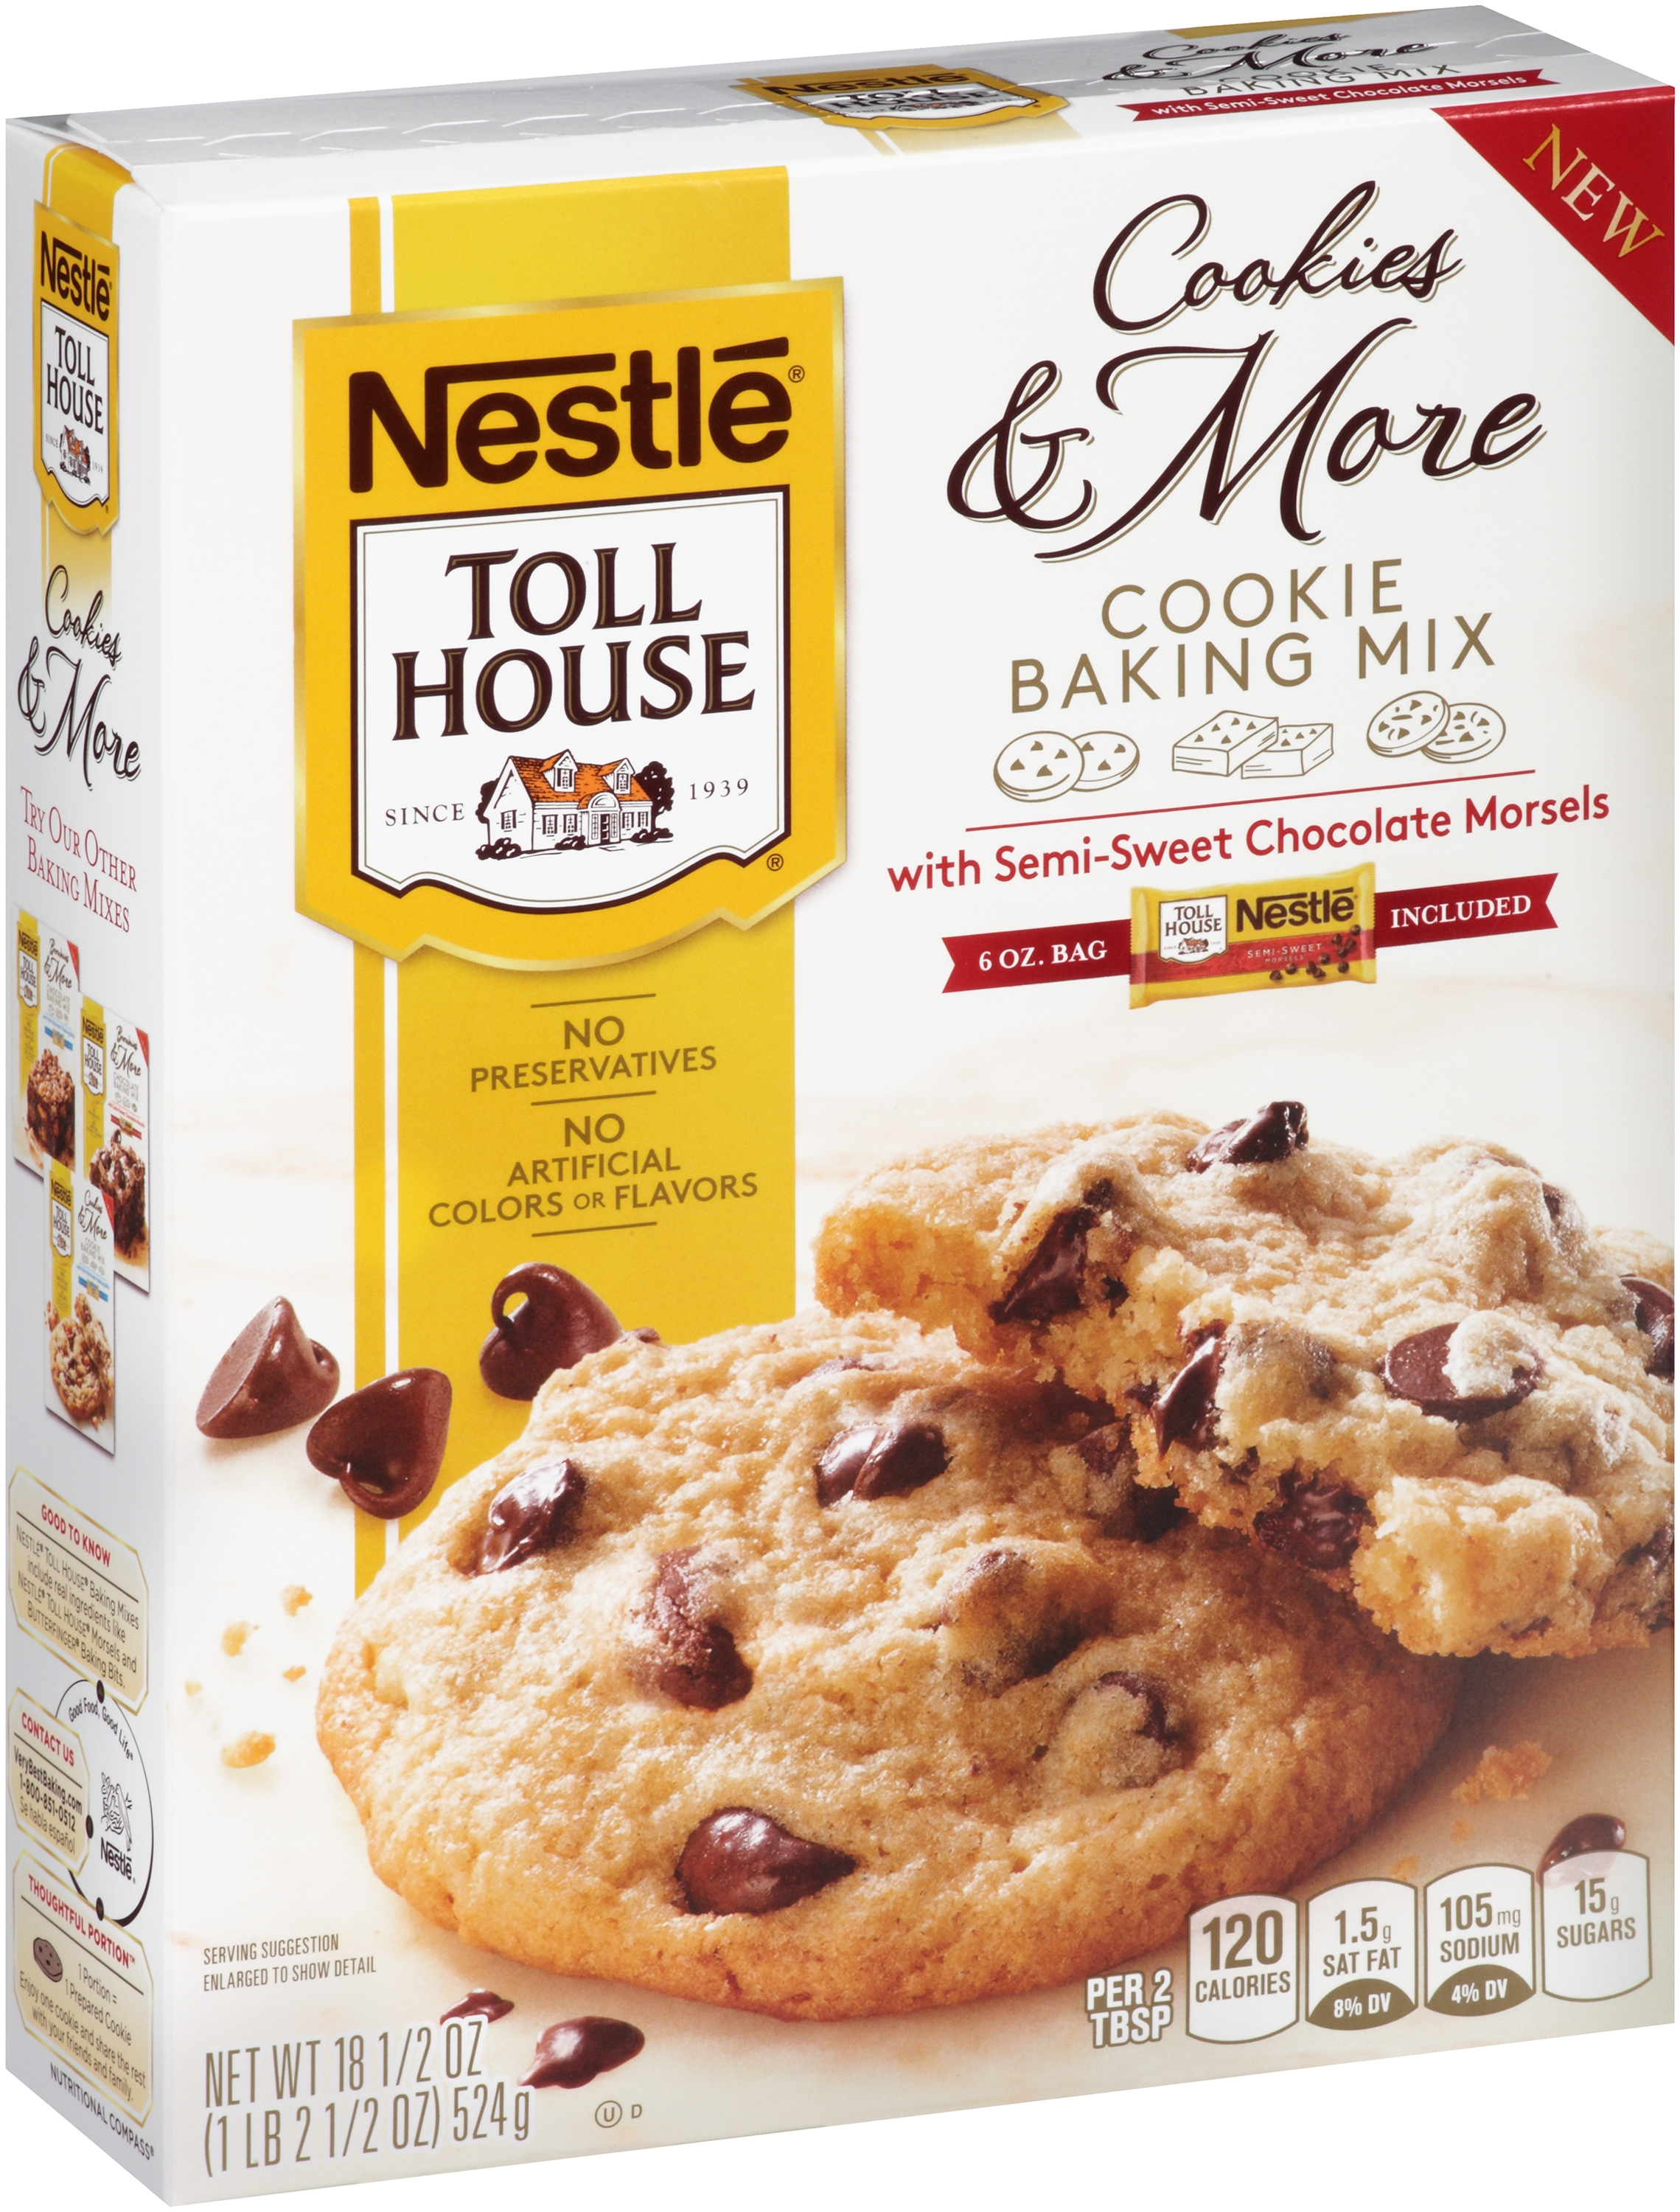 Nestle TOLL HOUSE Cookies & More Cookie Baking Mix with Semi-Sweet Chocolate Morsels